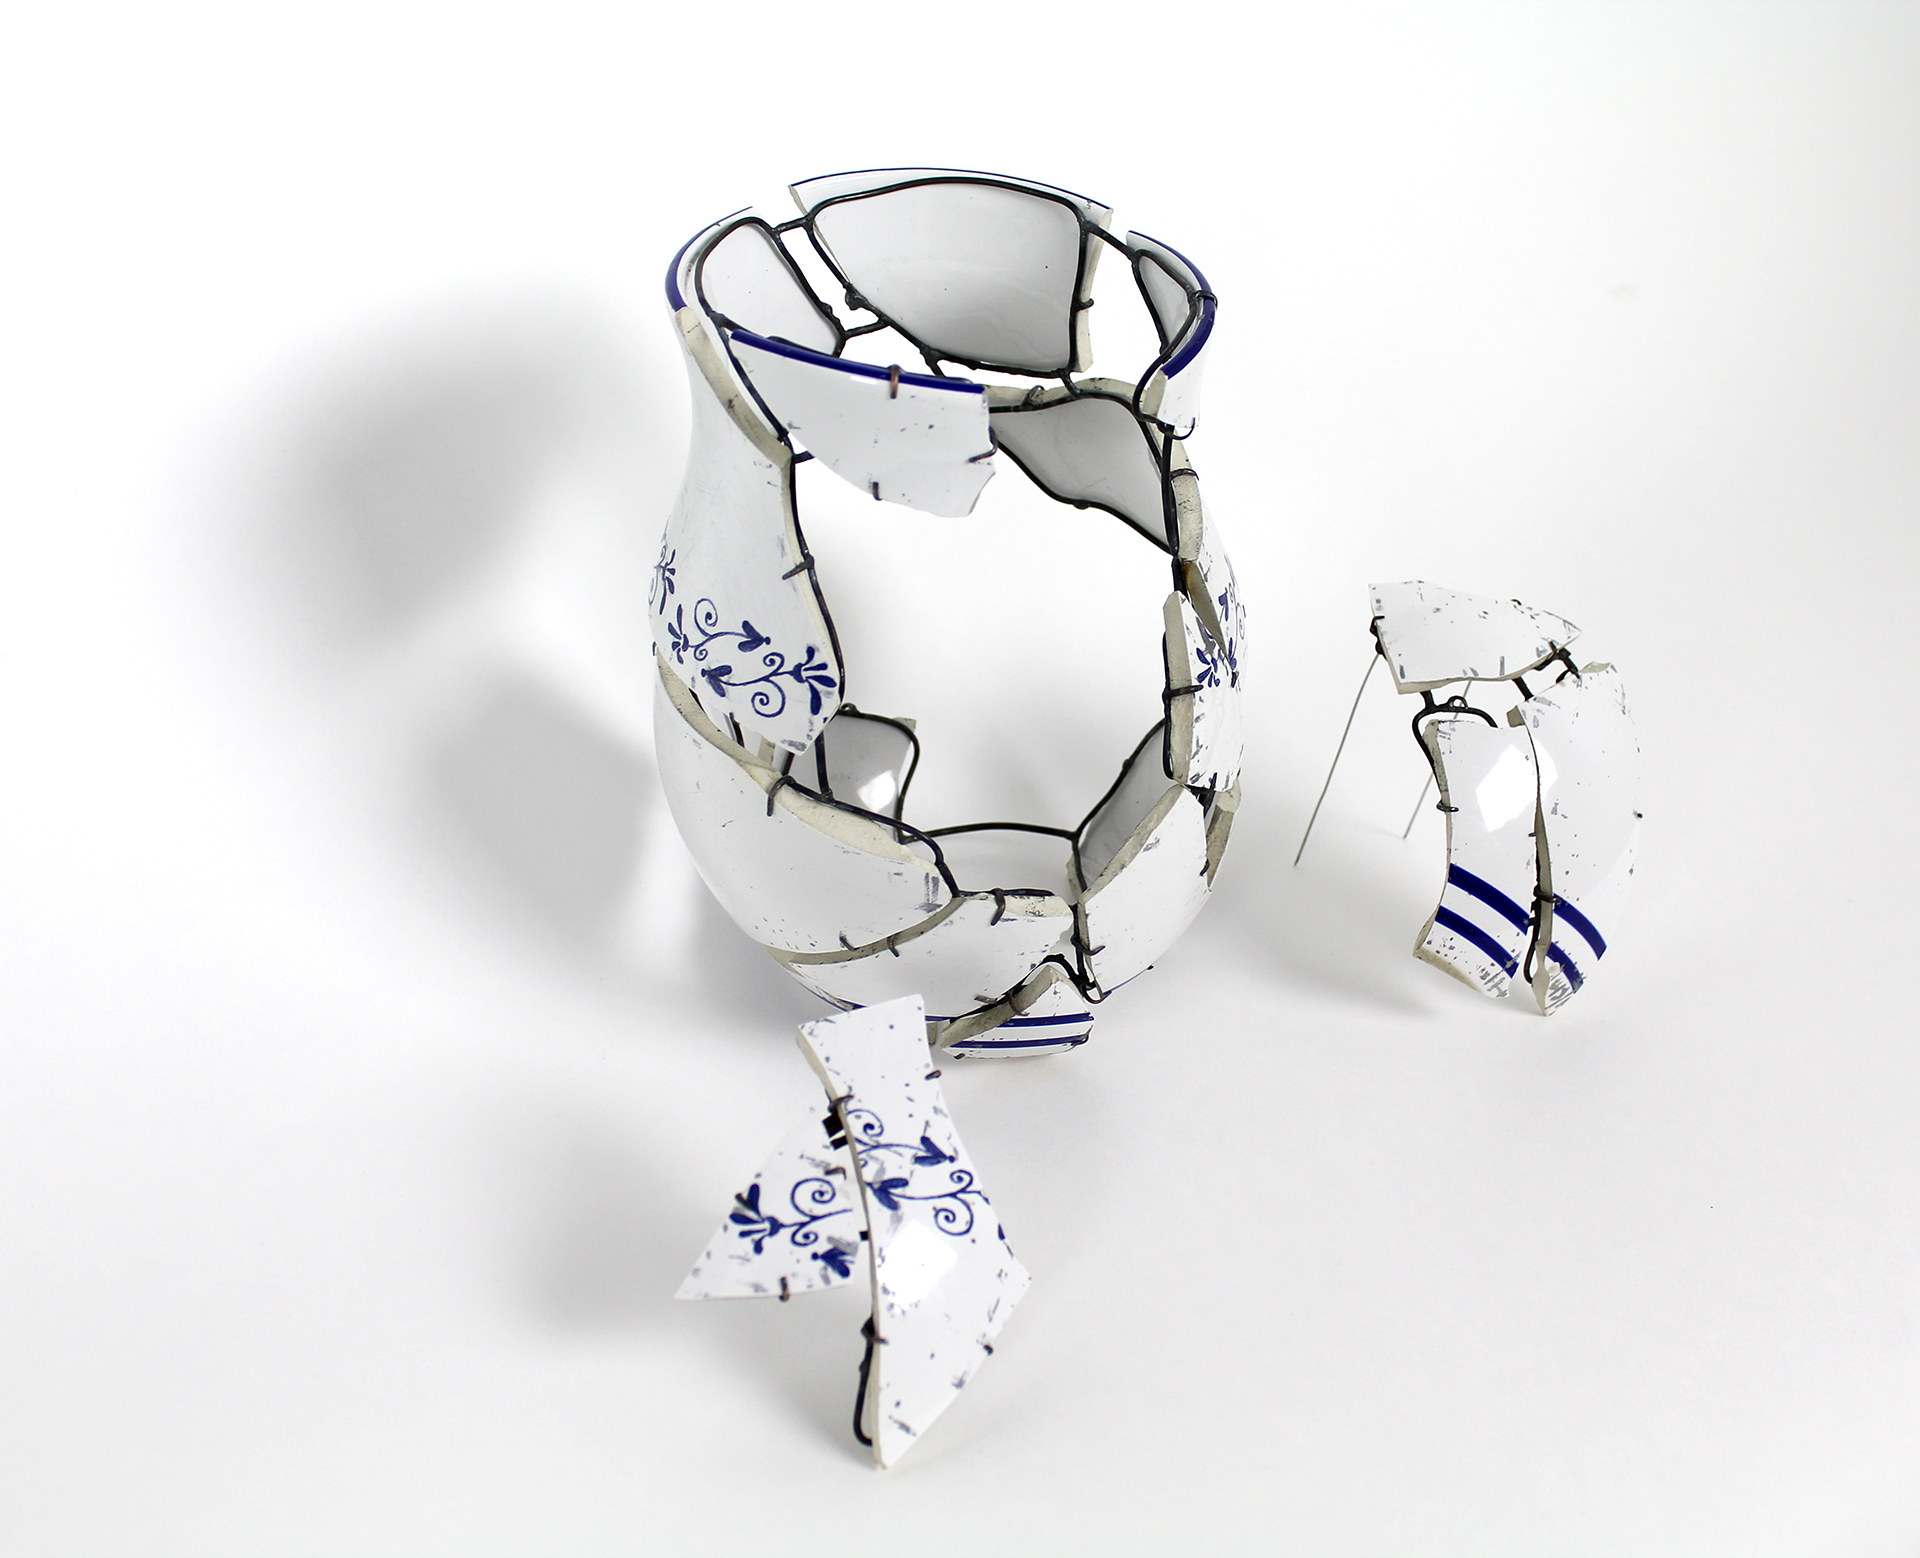 Vase with Two Brooches, Rachel Andrea Davis